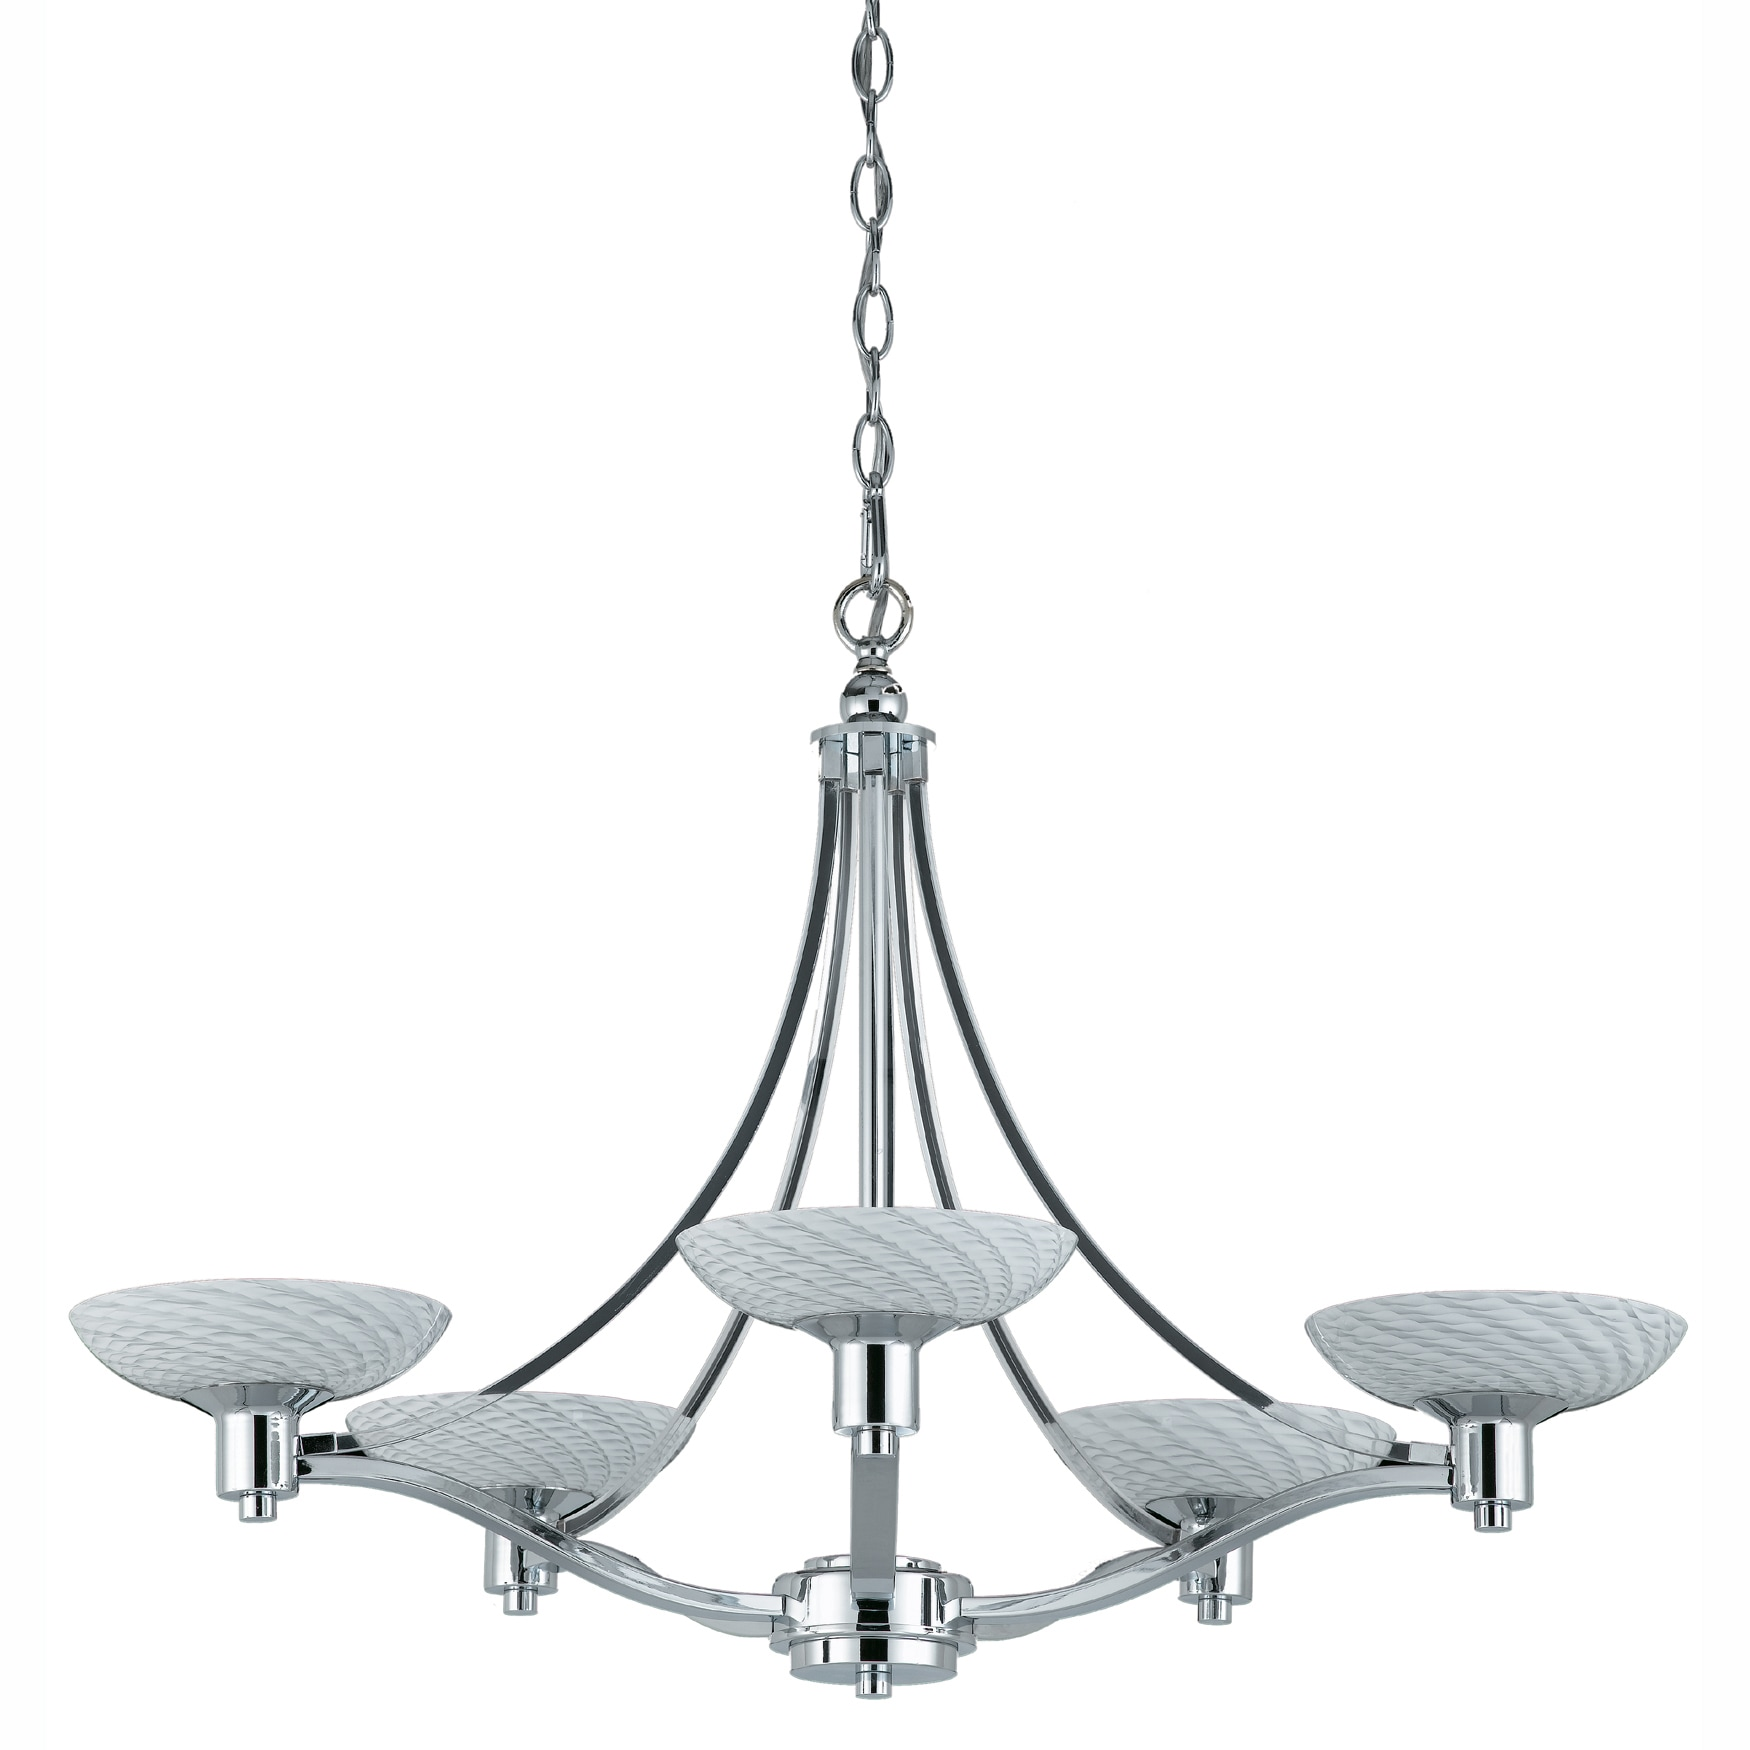 Contemporary 5-light Polished Chrome Chandelier